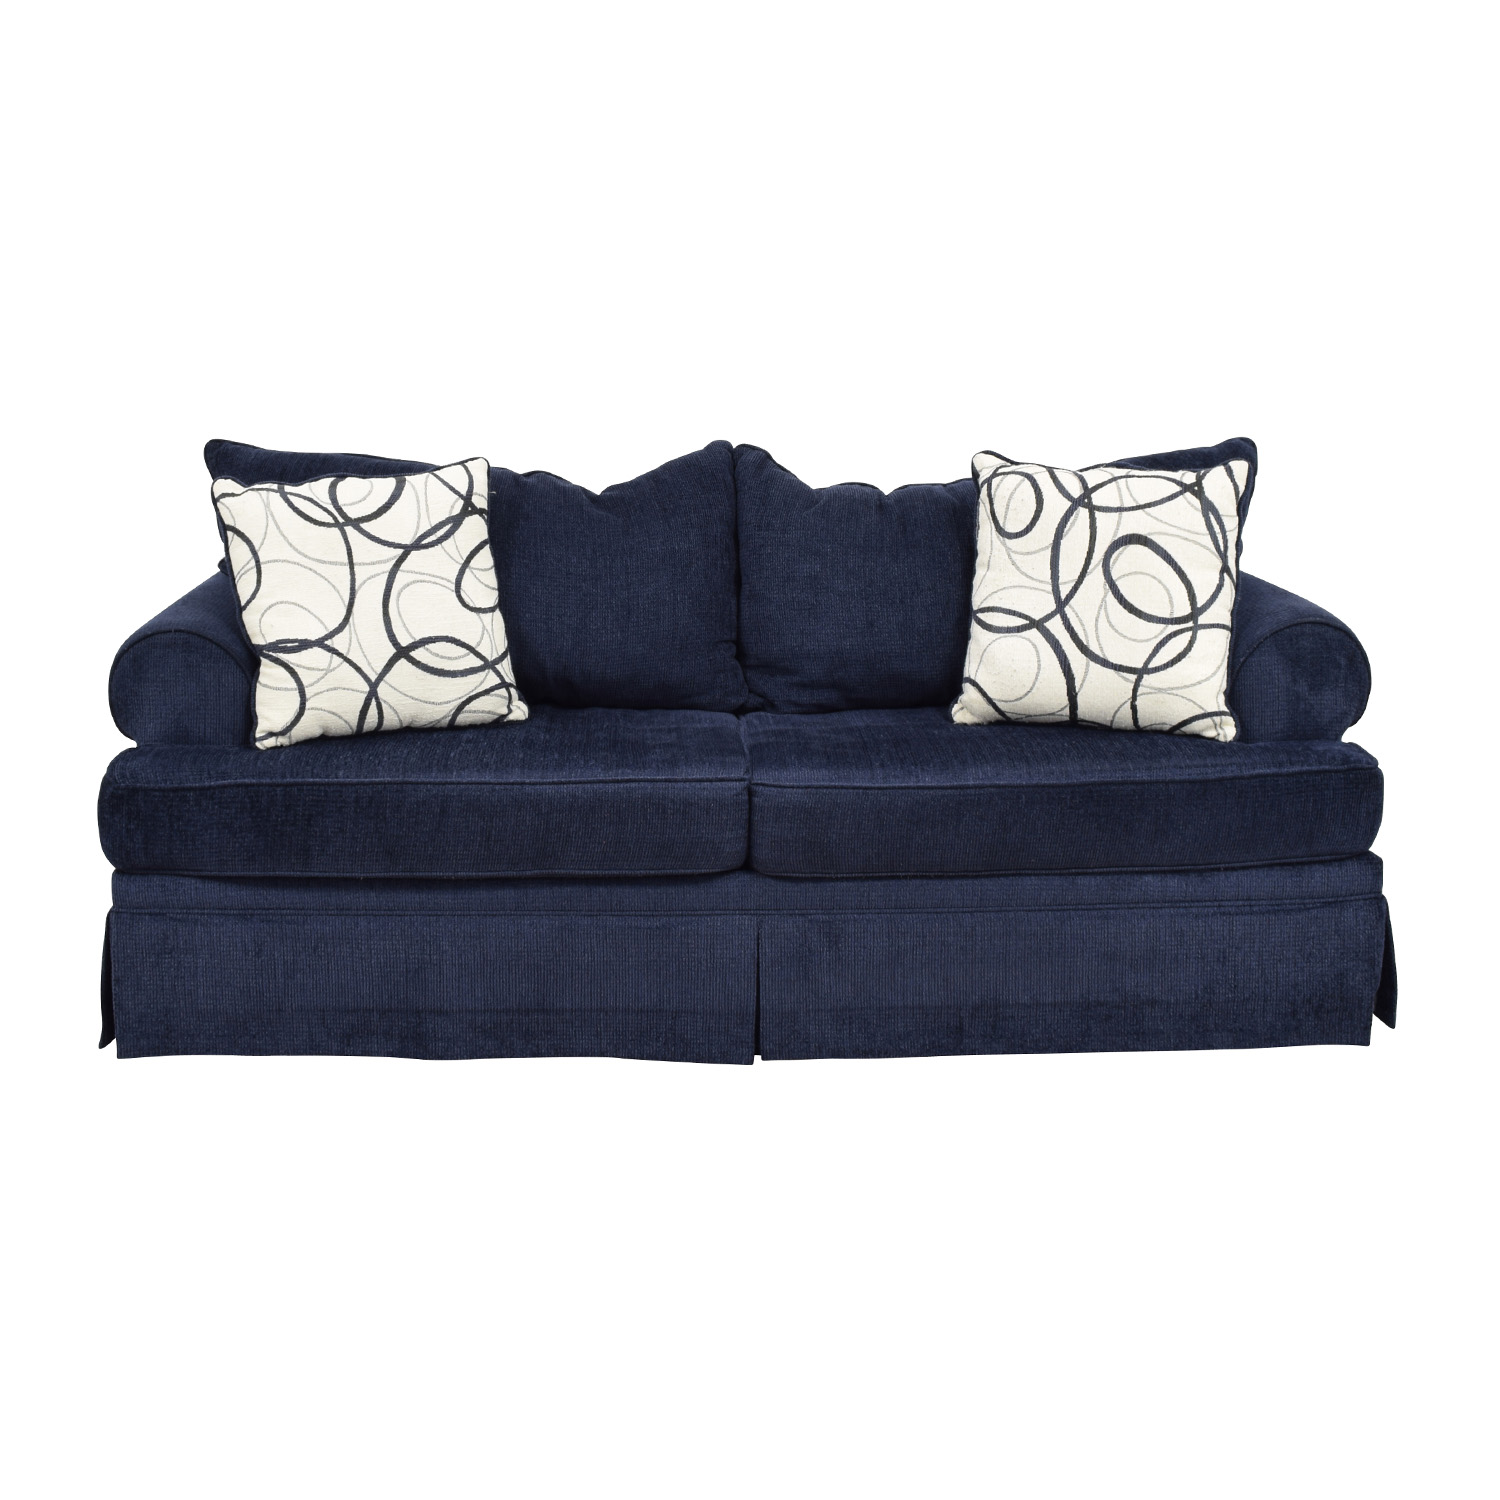 Best Of Sofa Bobs Furniture Ourrtwcom